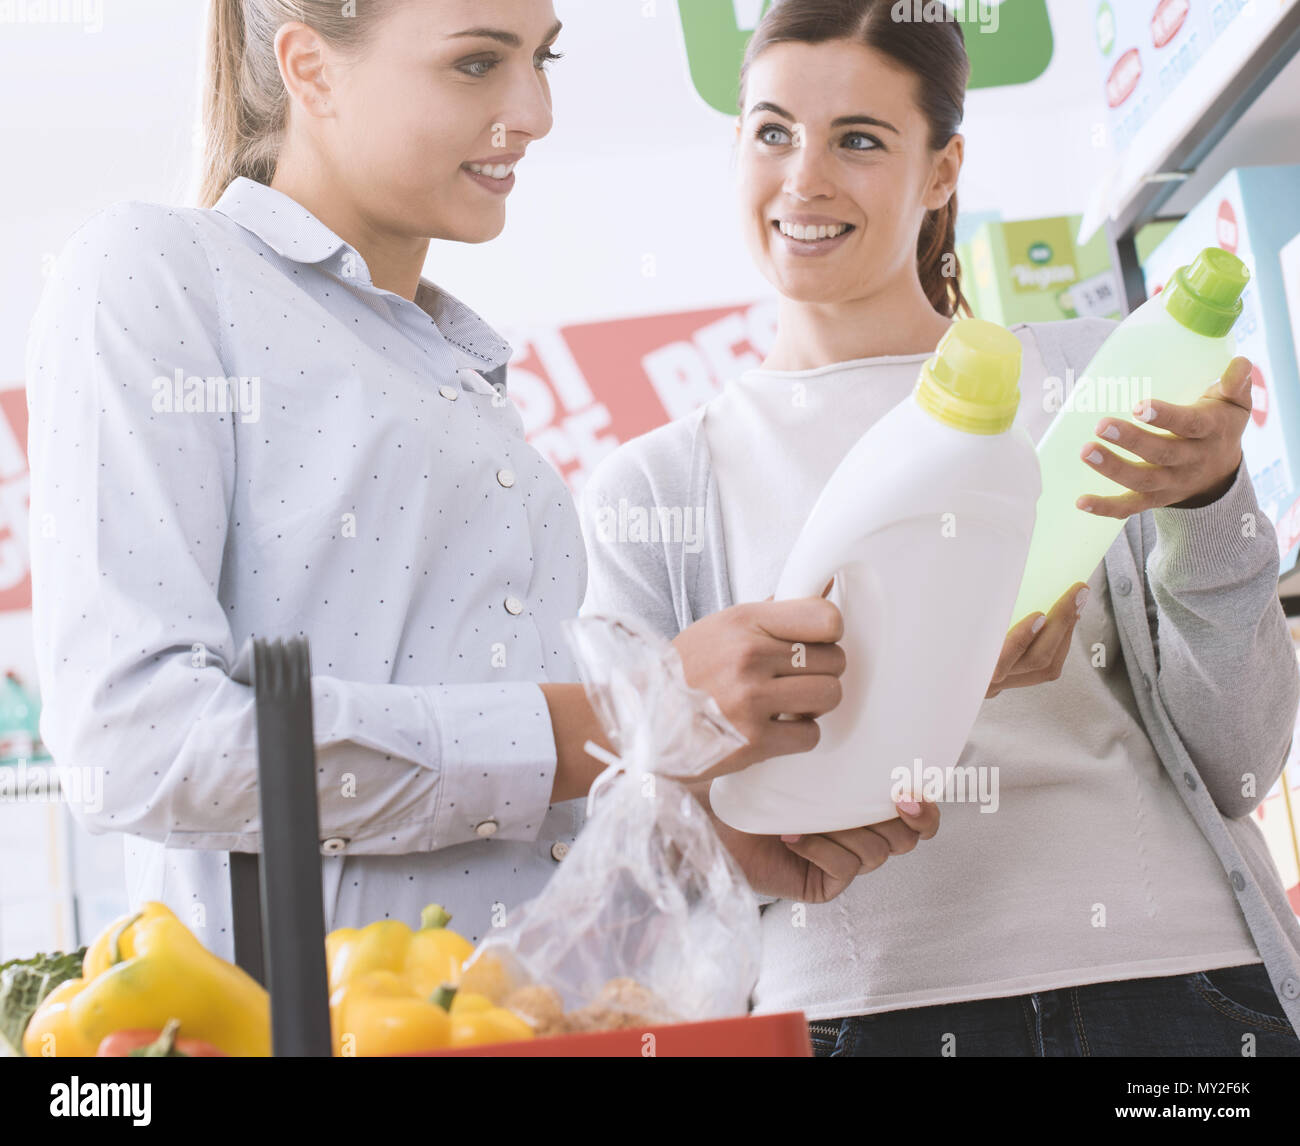 Women doing grocery shopping at the supermarket and choosing a laundry detergent, they are smiling and reading labels - Stock Image